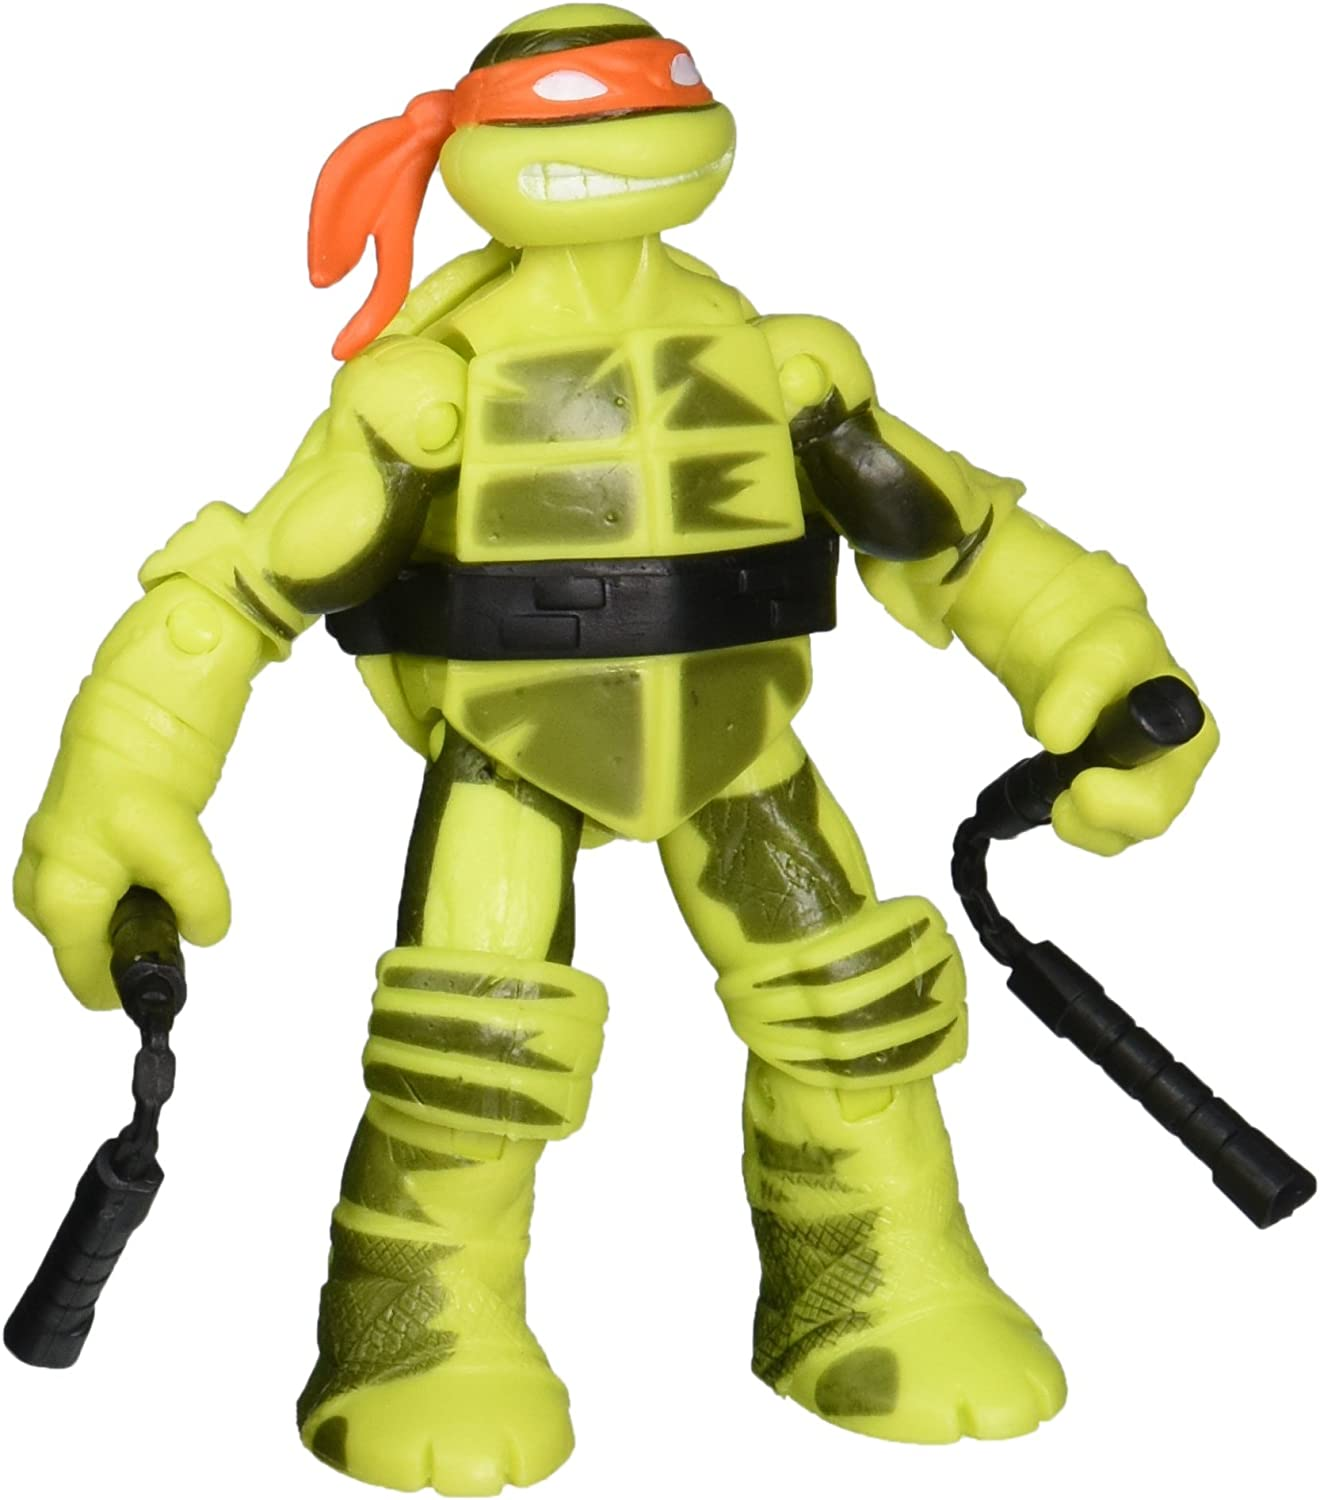 Teenage Mutant Ninja Turtles Ninja Color Change Michelangelo Action Figure